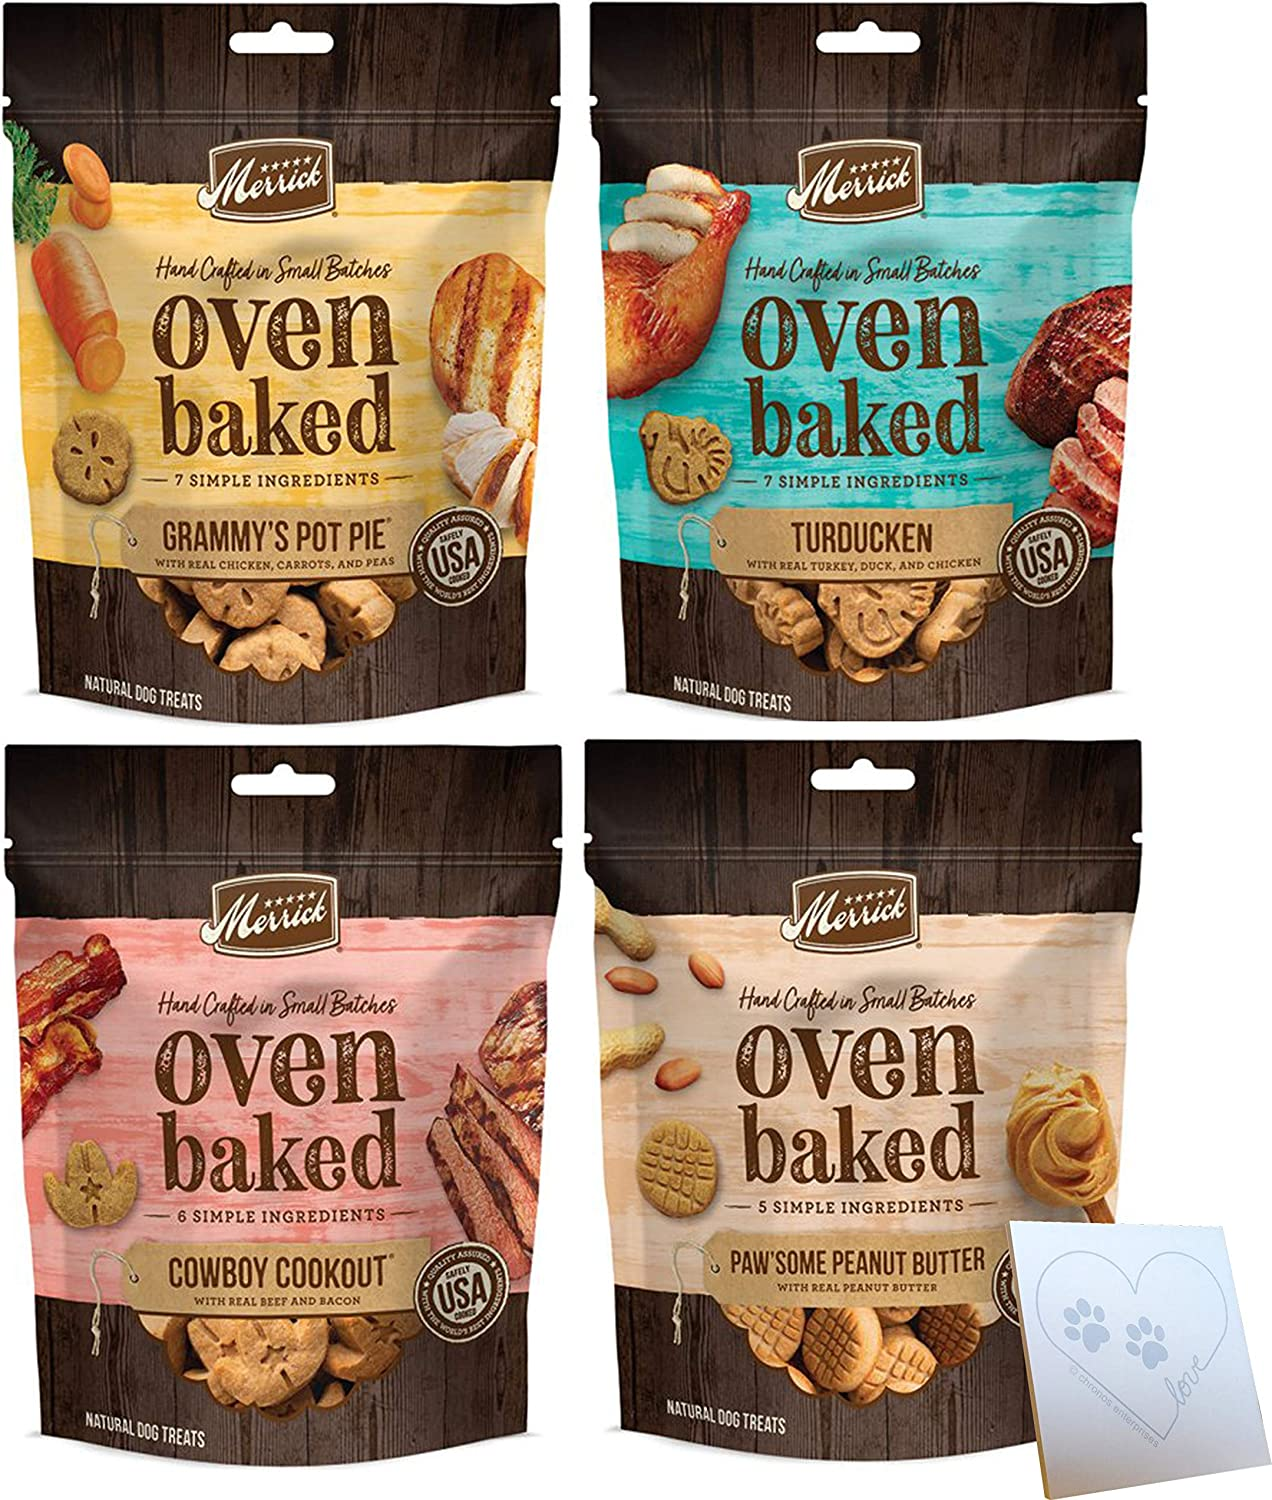 Merrick Oven Baked Biscuits Variety Pack - Four Total Flavors: Peanut Butter, Cowboy Cookout, Grammy's Pot Pie, & Turducken + Notepad (11oz Each, 44oz Total)